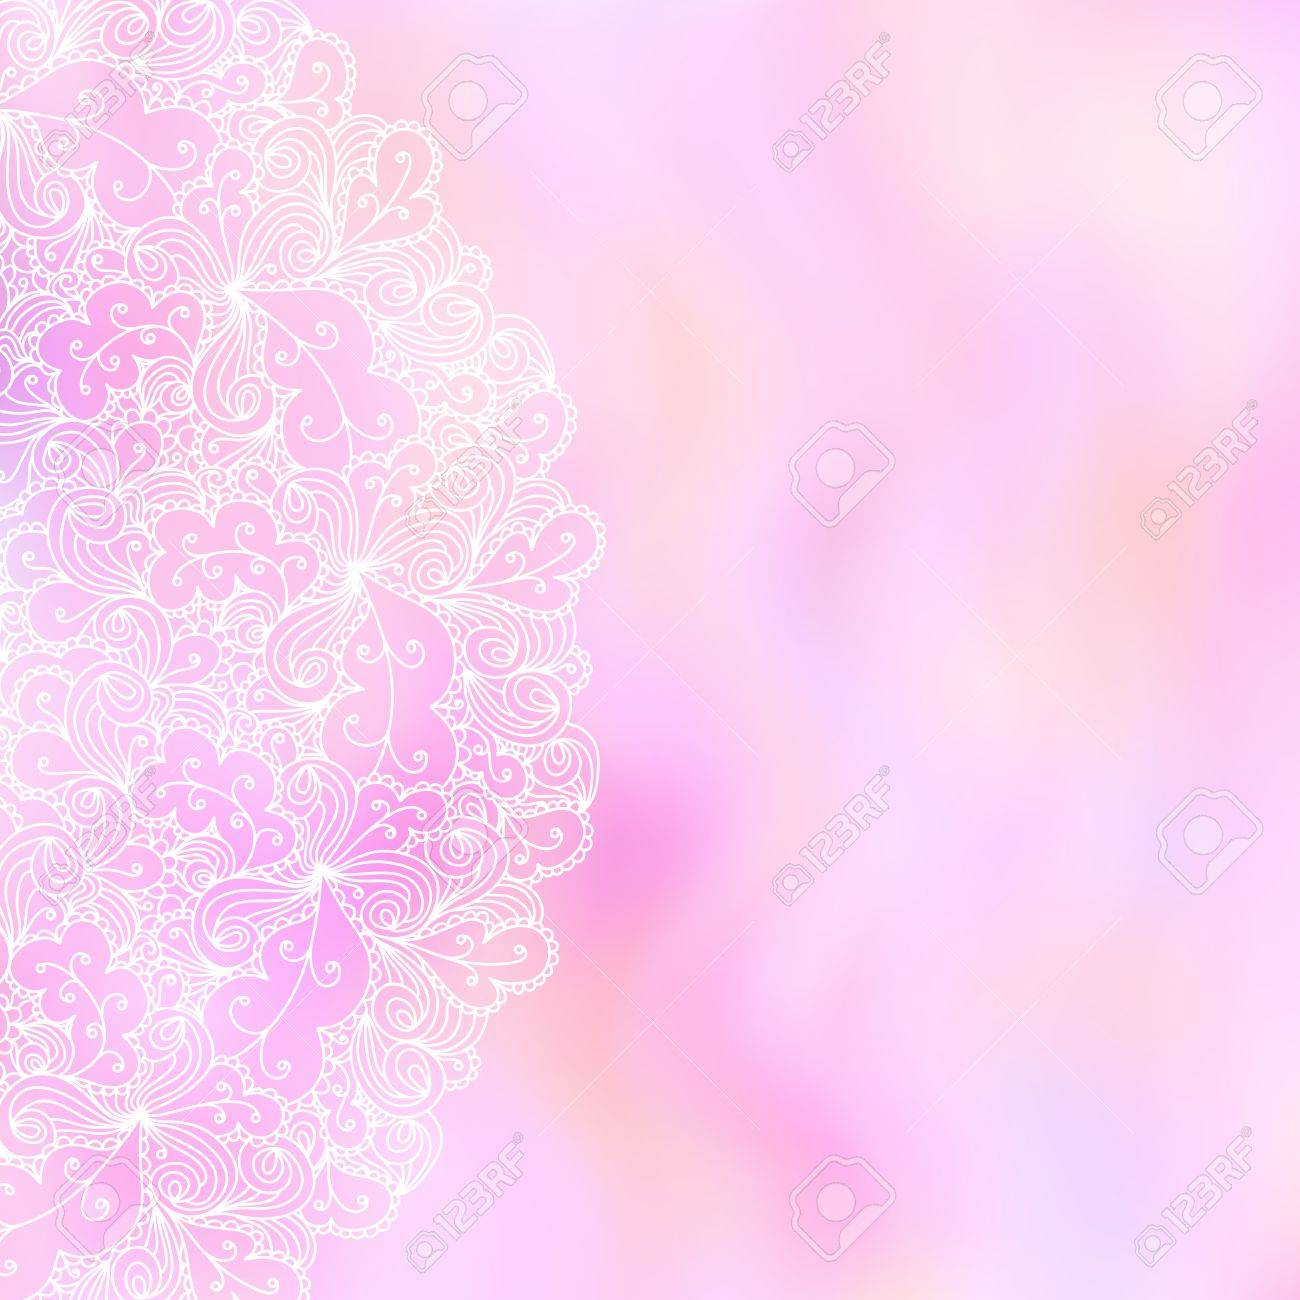 Abstract Background Wedding Invitation Or Greeting Card Design